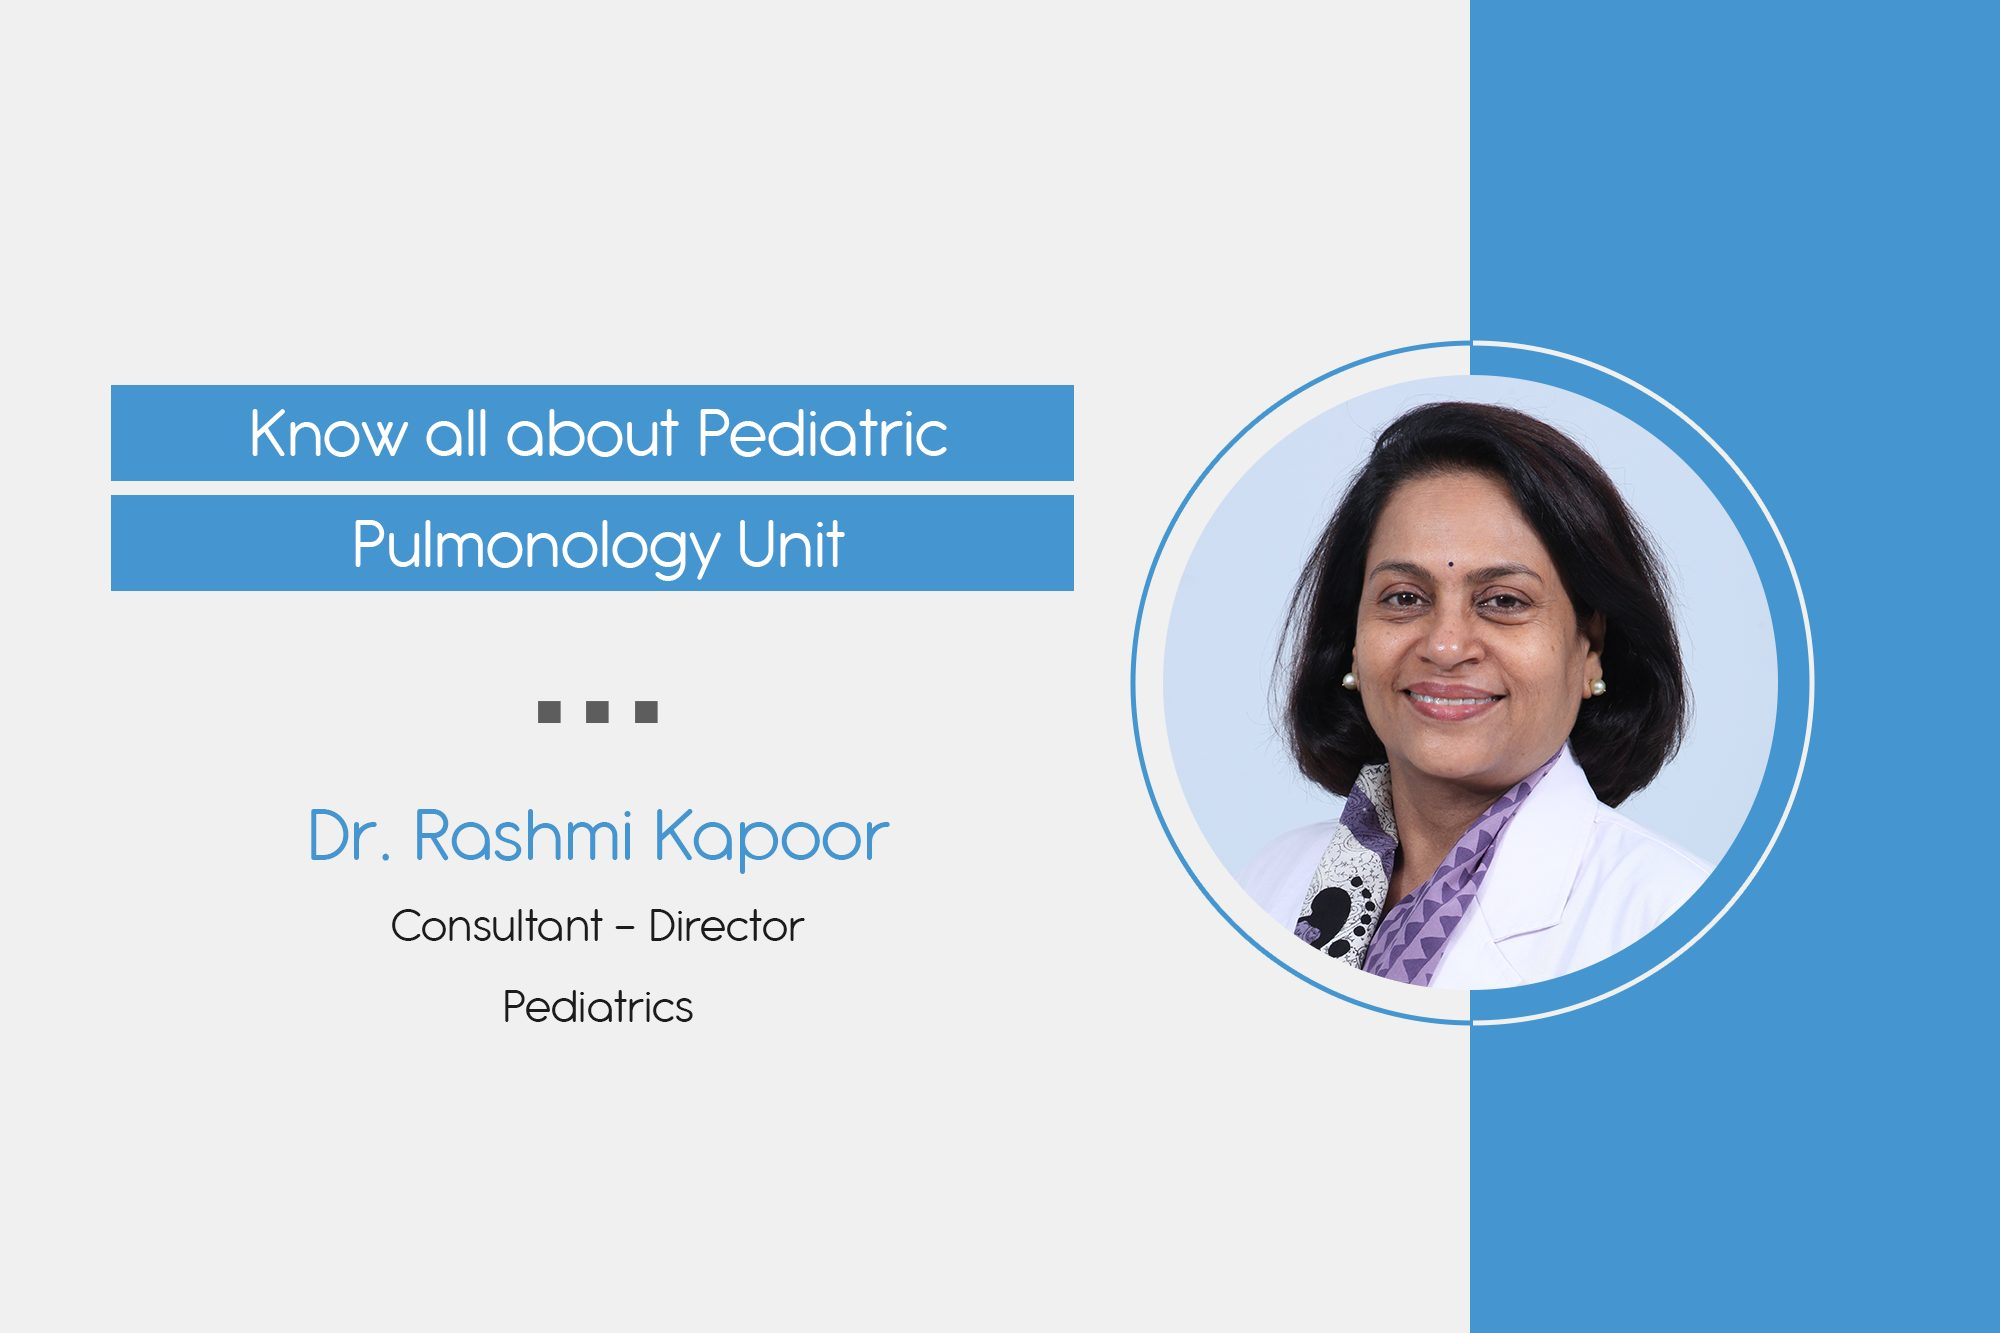 Know all about Pediatric Pulmonology Unit